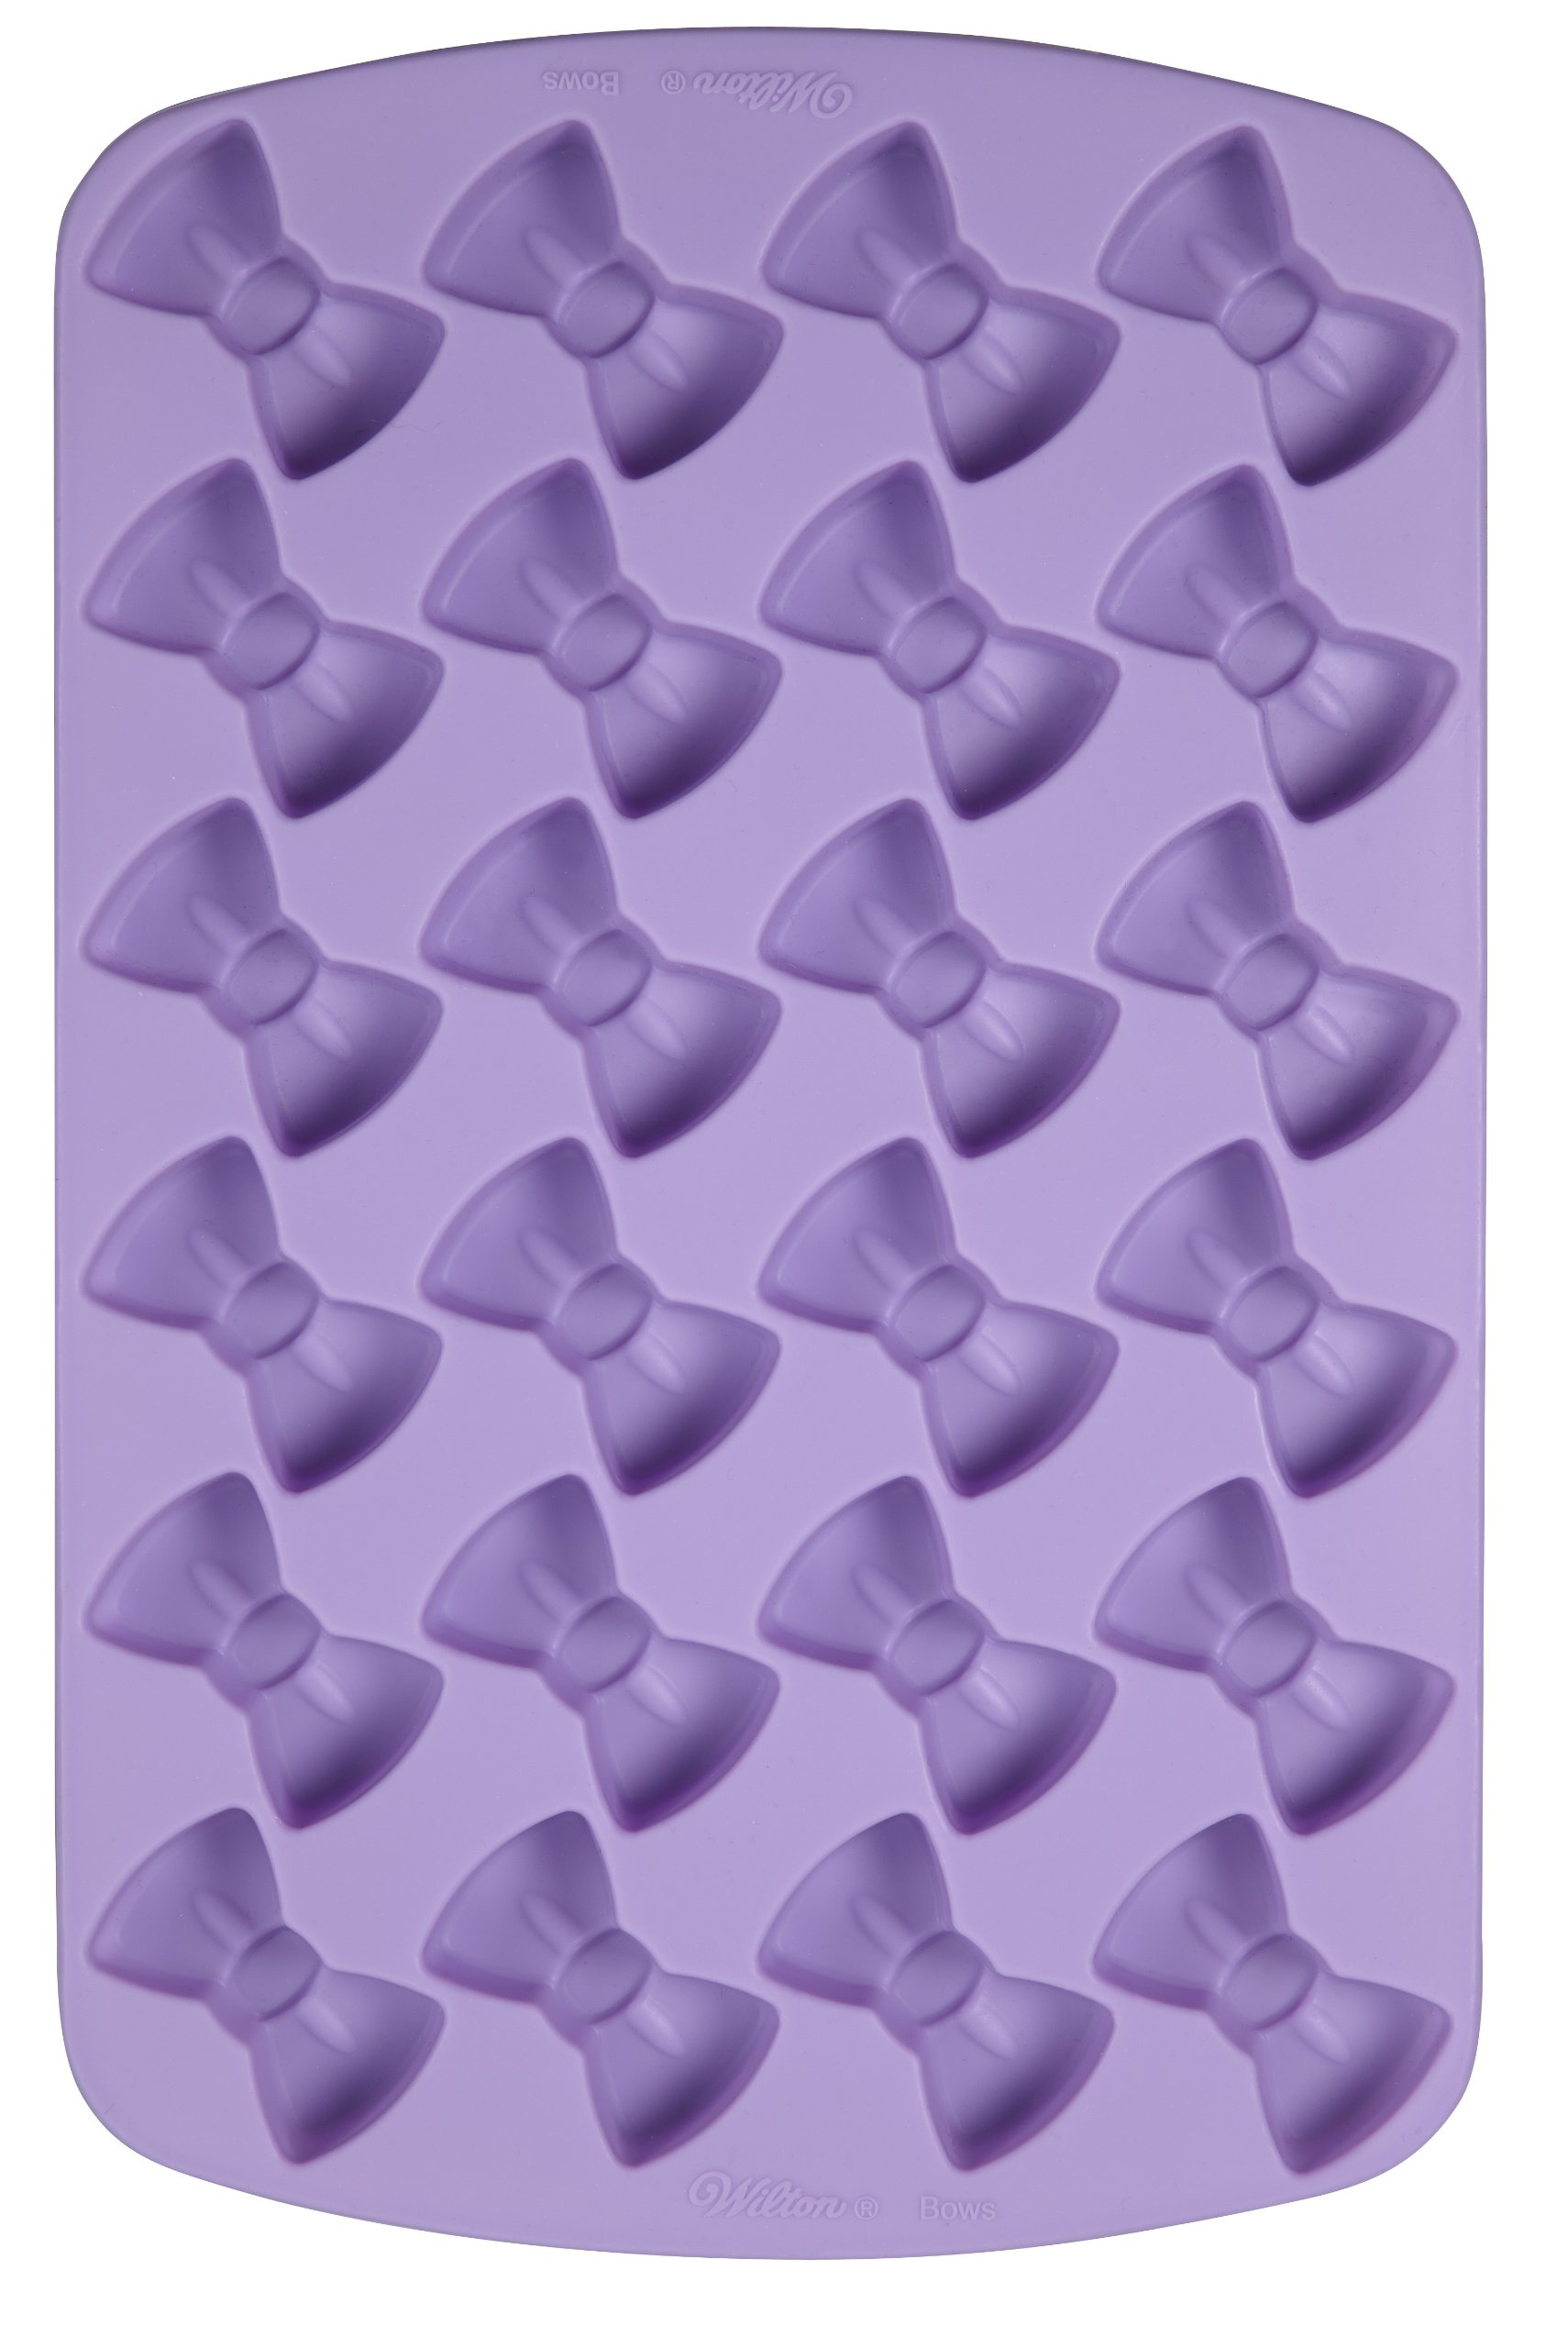 Wilton 2105-6922 Bow Silicone Treat Mold, 24 Cavities- Discontinued By Manfacturer